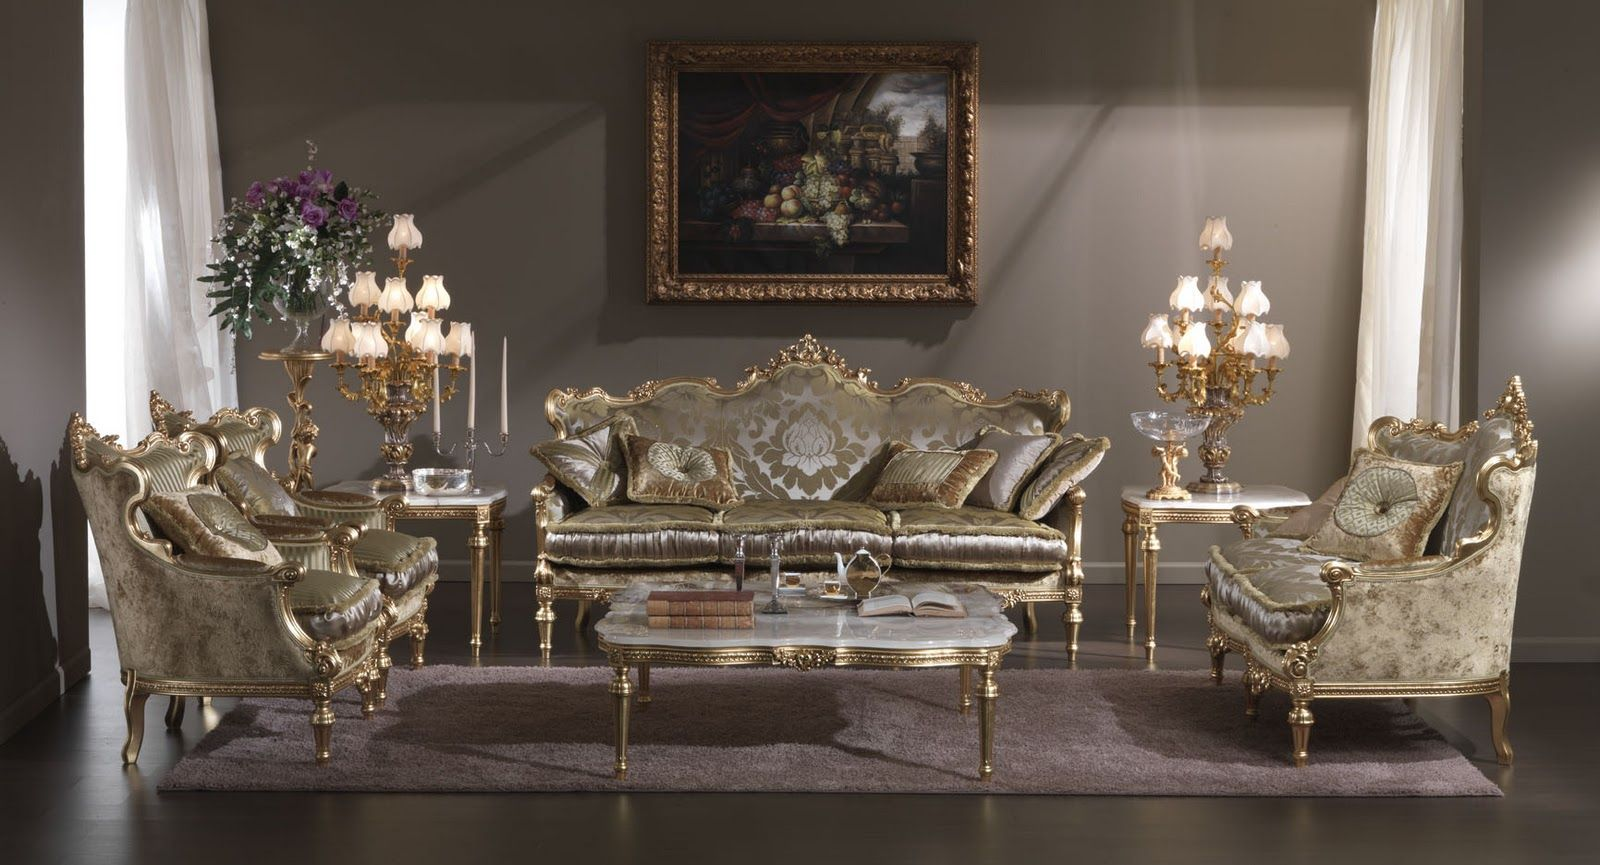 antique living room set. Elegant Antique Living Room Furniture Set Decoration Ideas Home italian living room furniture  Italian Classic